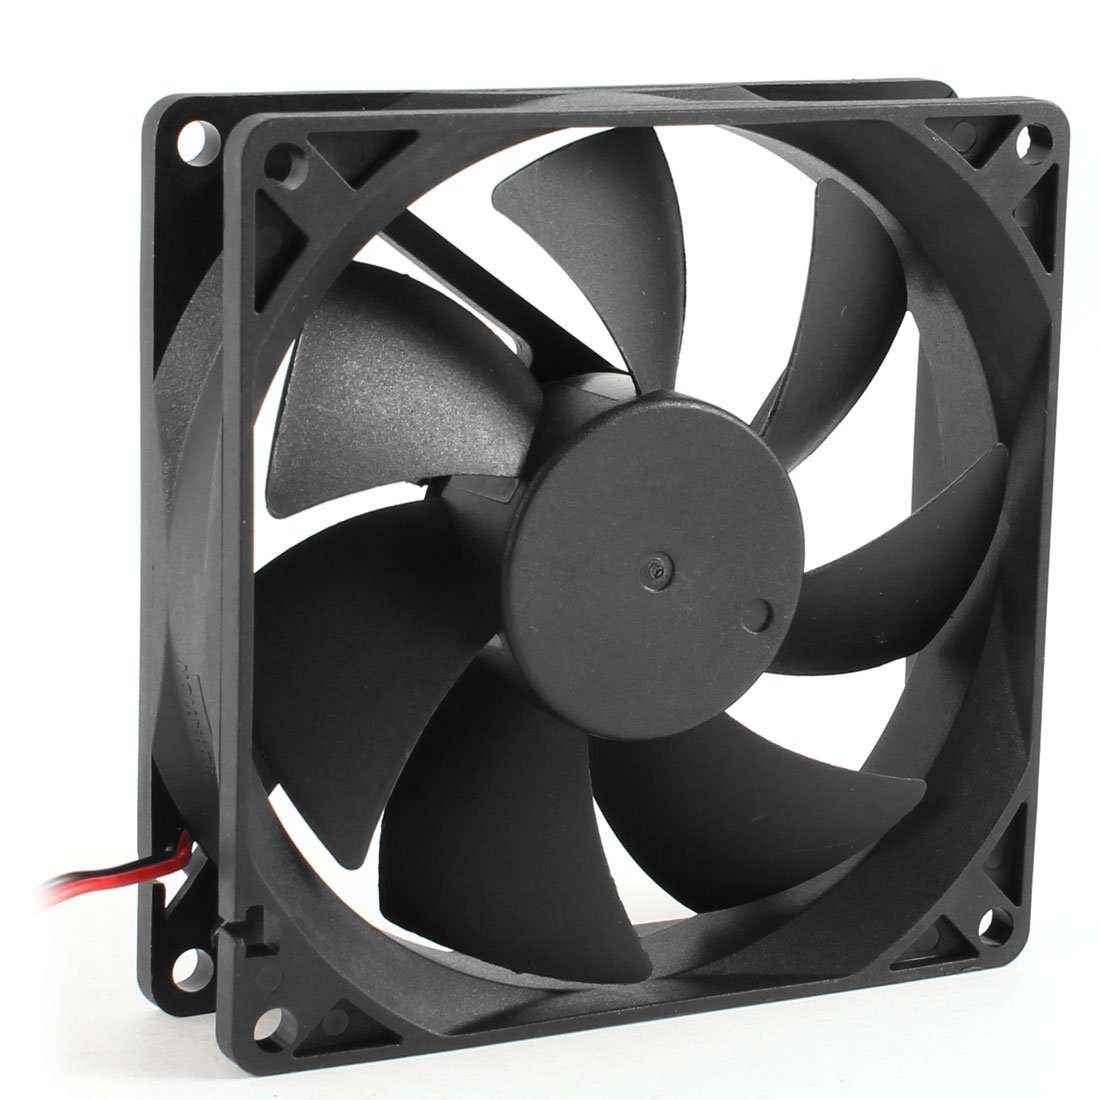 92mm x 25mm DC 12V 2Pin 65.01CFM Computer Case CPU Cooler Cooling Fan gdstime 10 pcs dc 12v 14025 pc case cooling fan 140mm x 25mm 14cm 2 wire 2pin connector computer 140x140x25mm